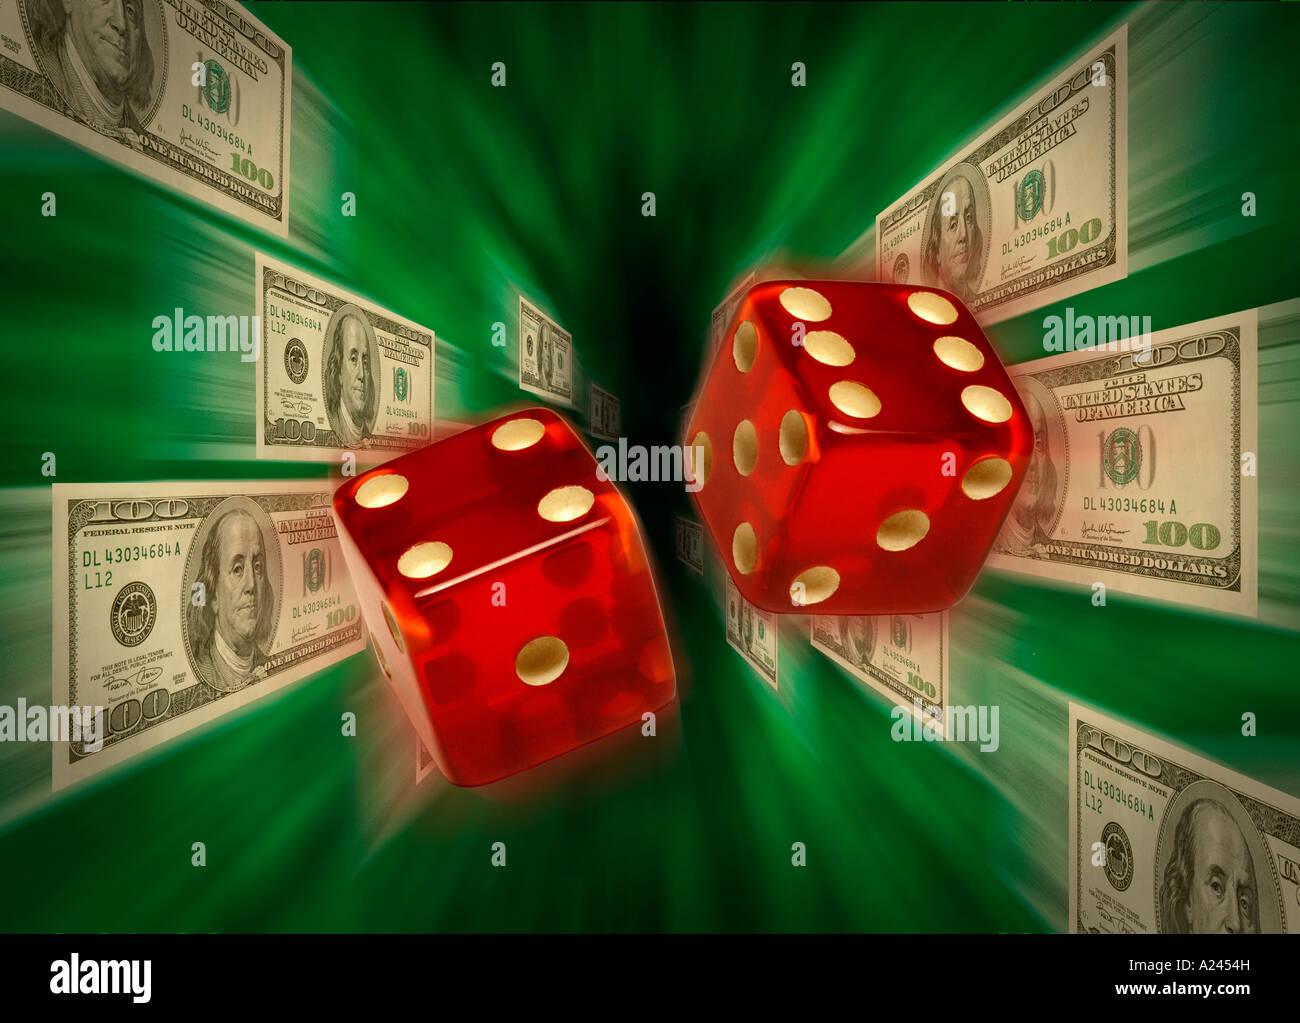 Red dice flying toward camera against a background of $100 bills flying through a green vortex - Stock Image